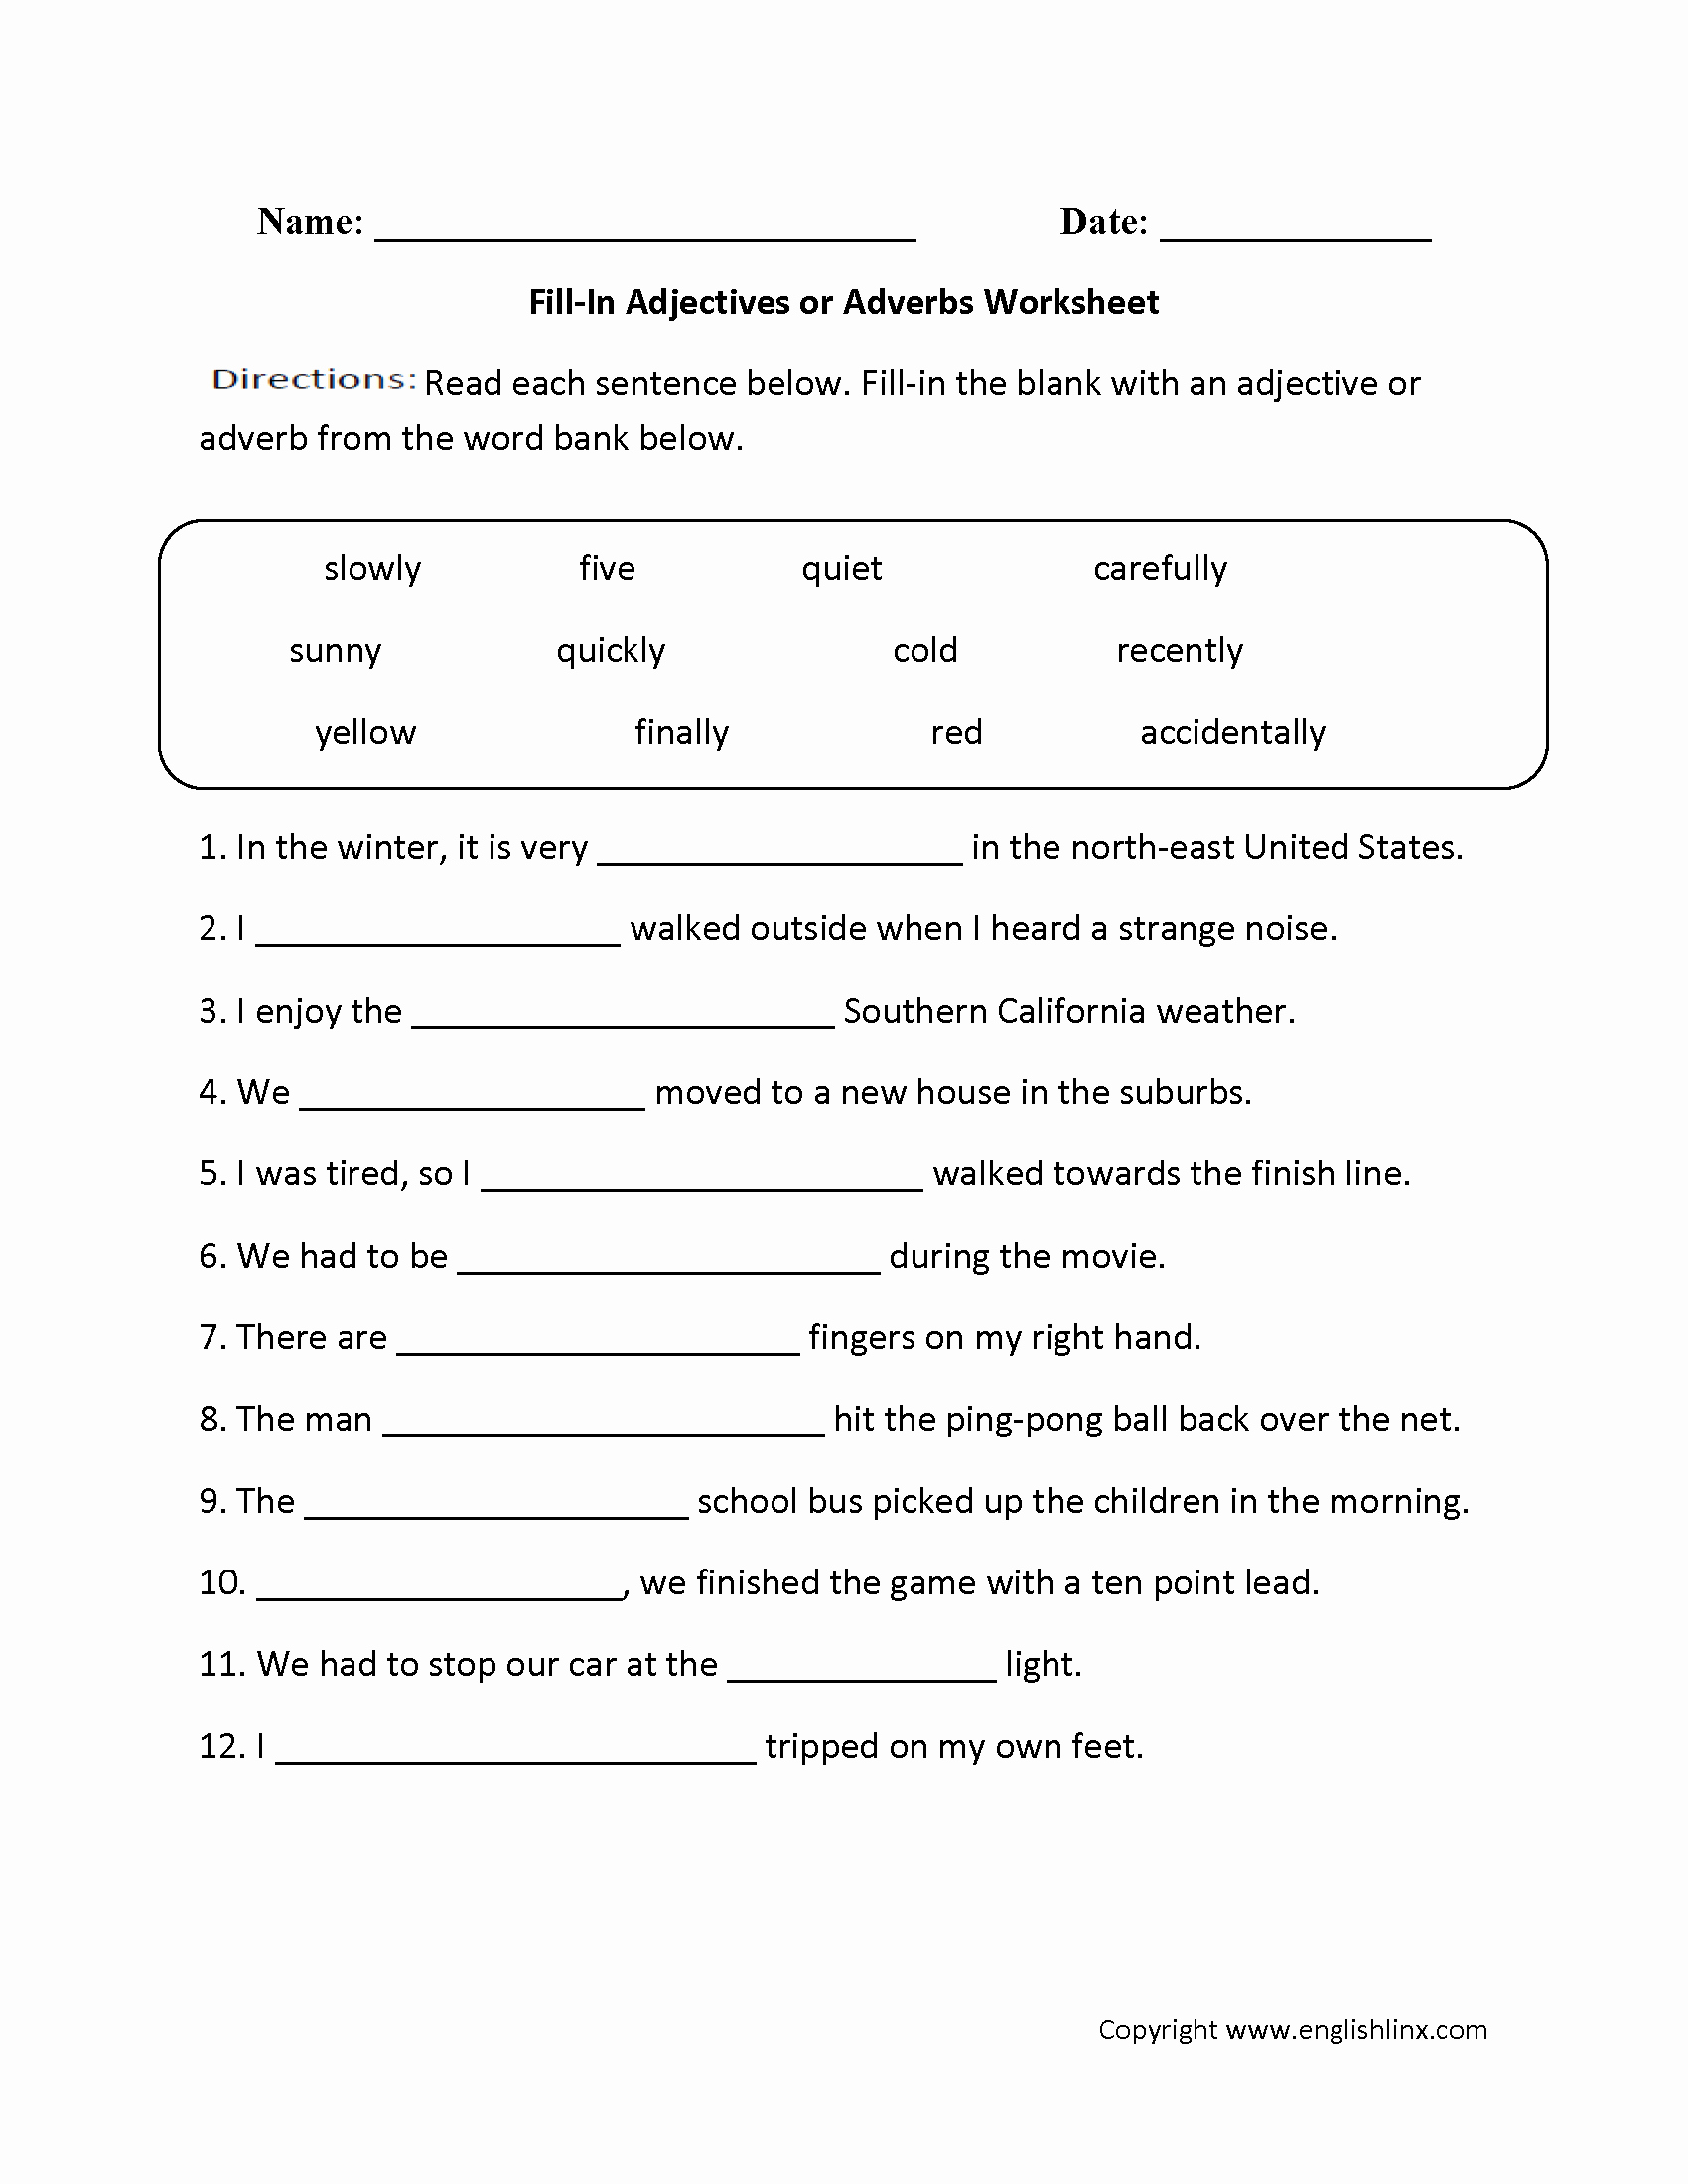 Bibliography Practice Worksheets Best Of 14 Best Of Adjectives Worksheets for Grade 5 as